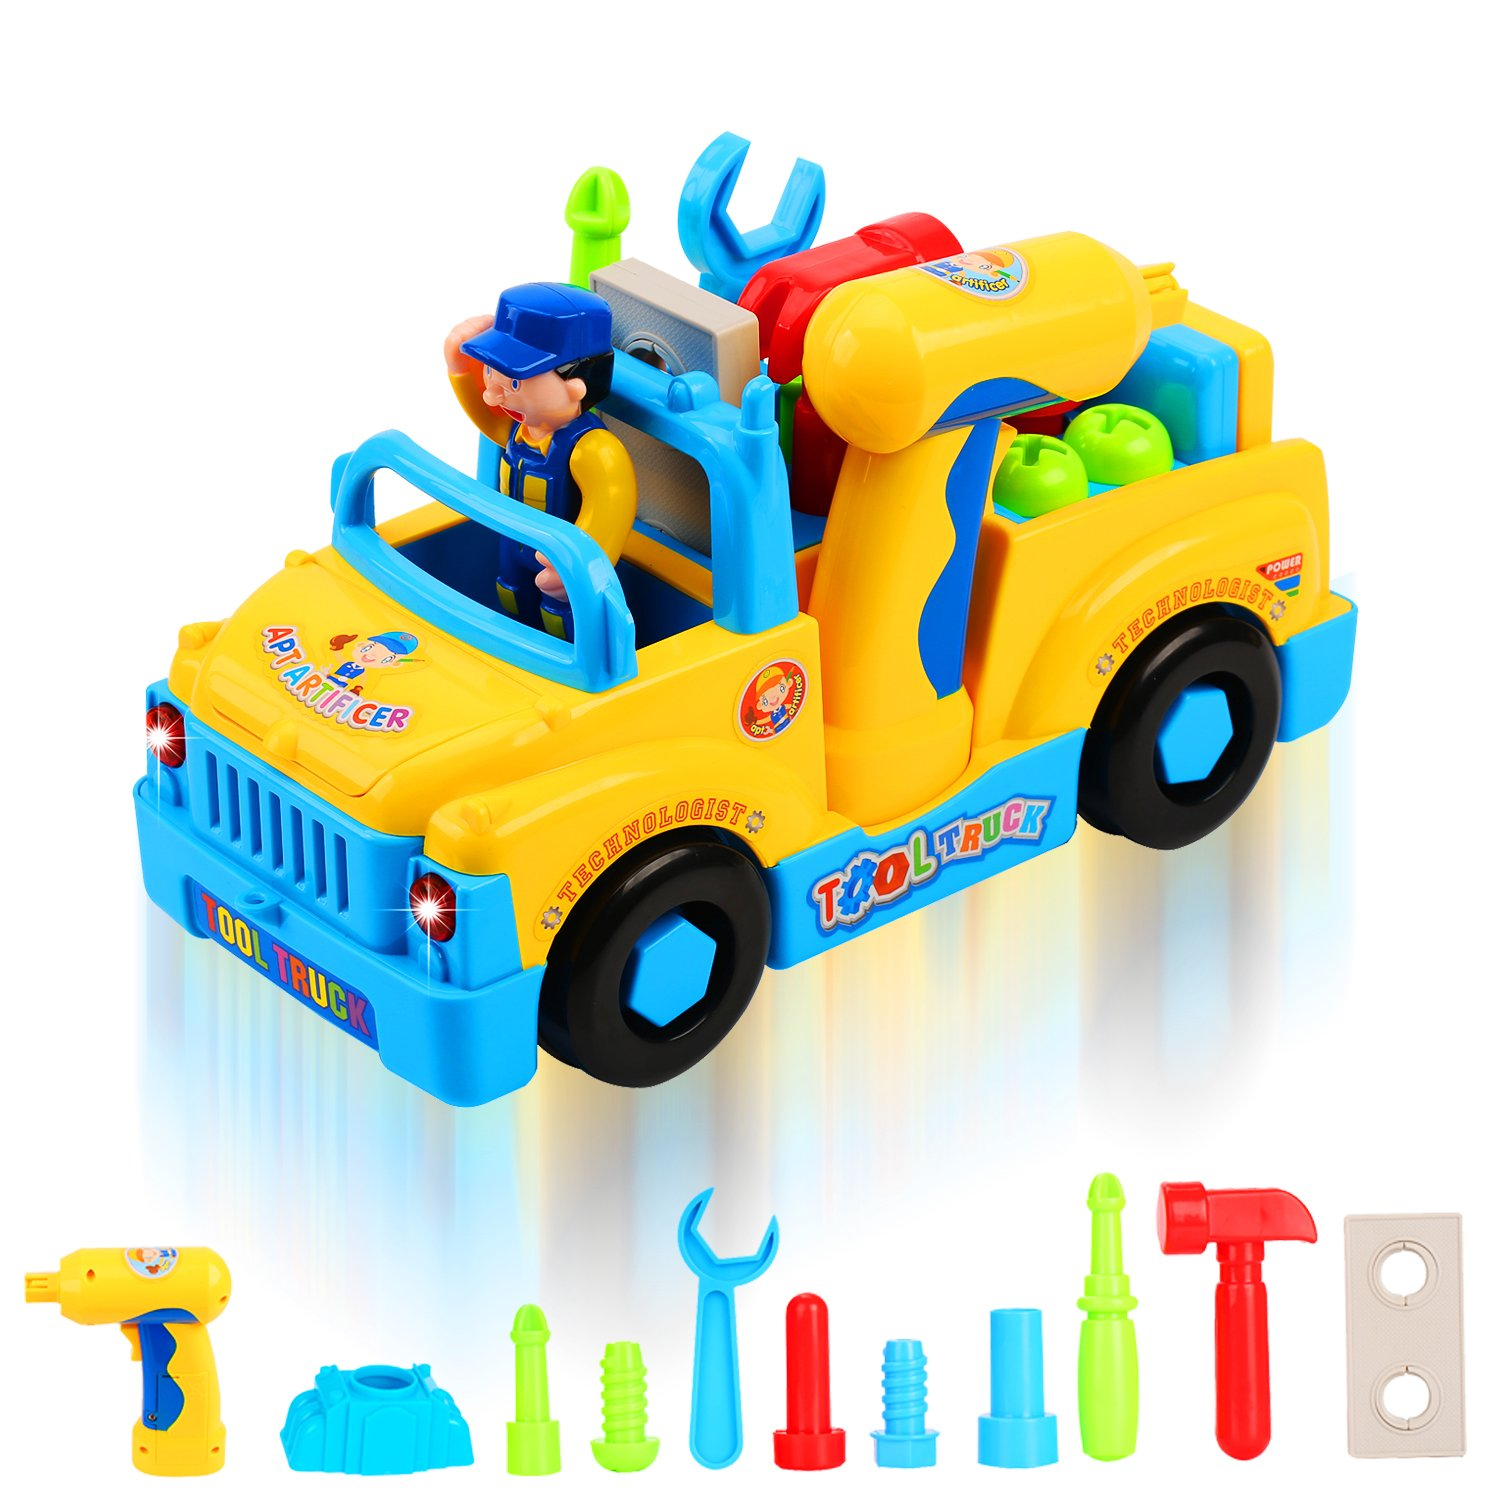 50%OFF QuadPro Truck Take Apart Toys for Boys Girl With Electric